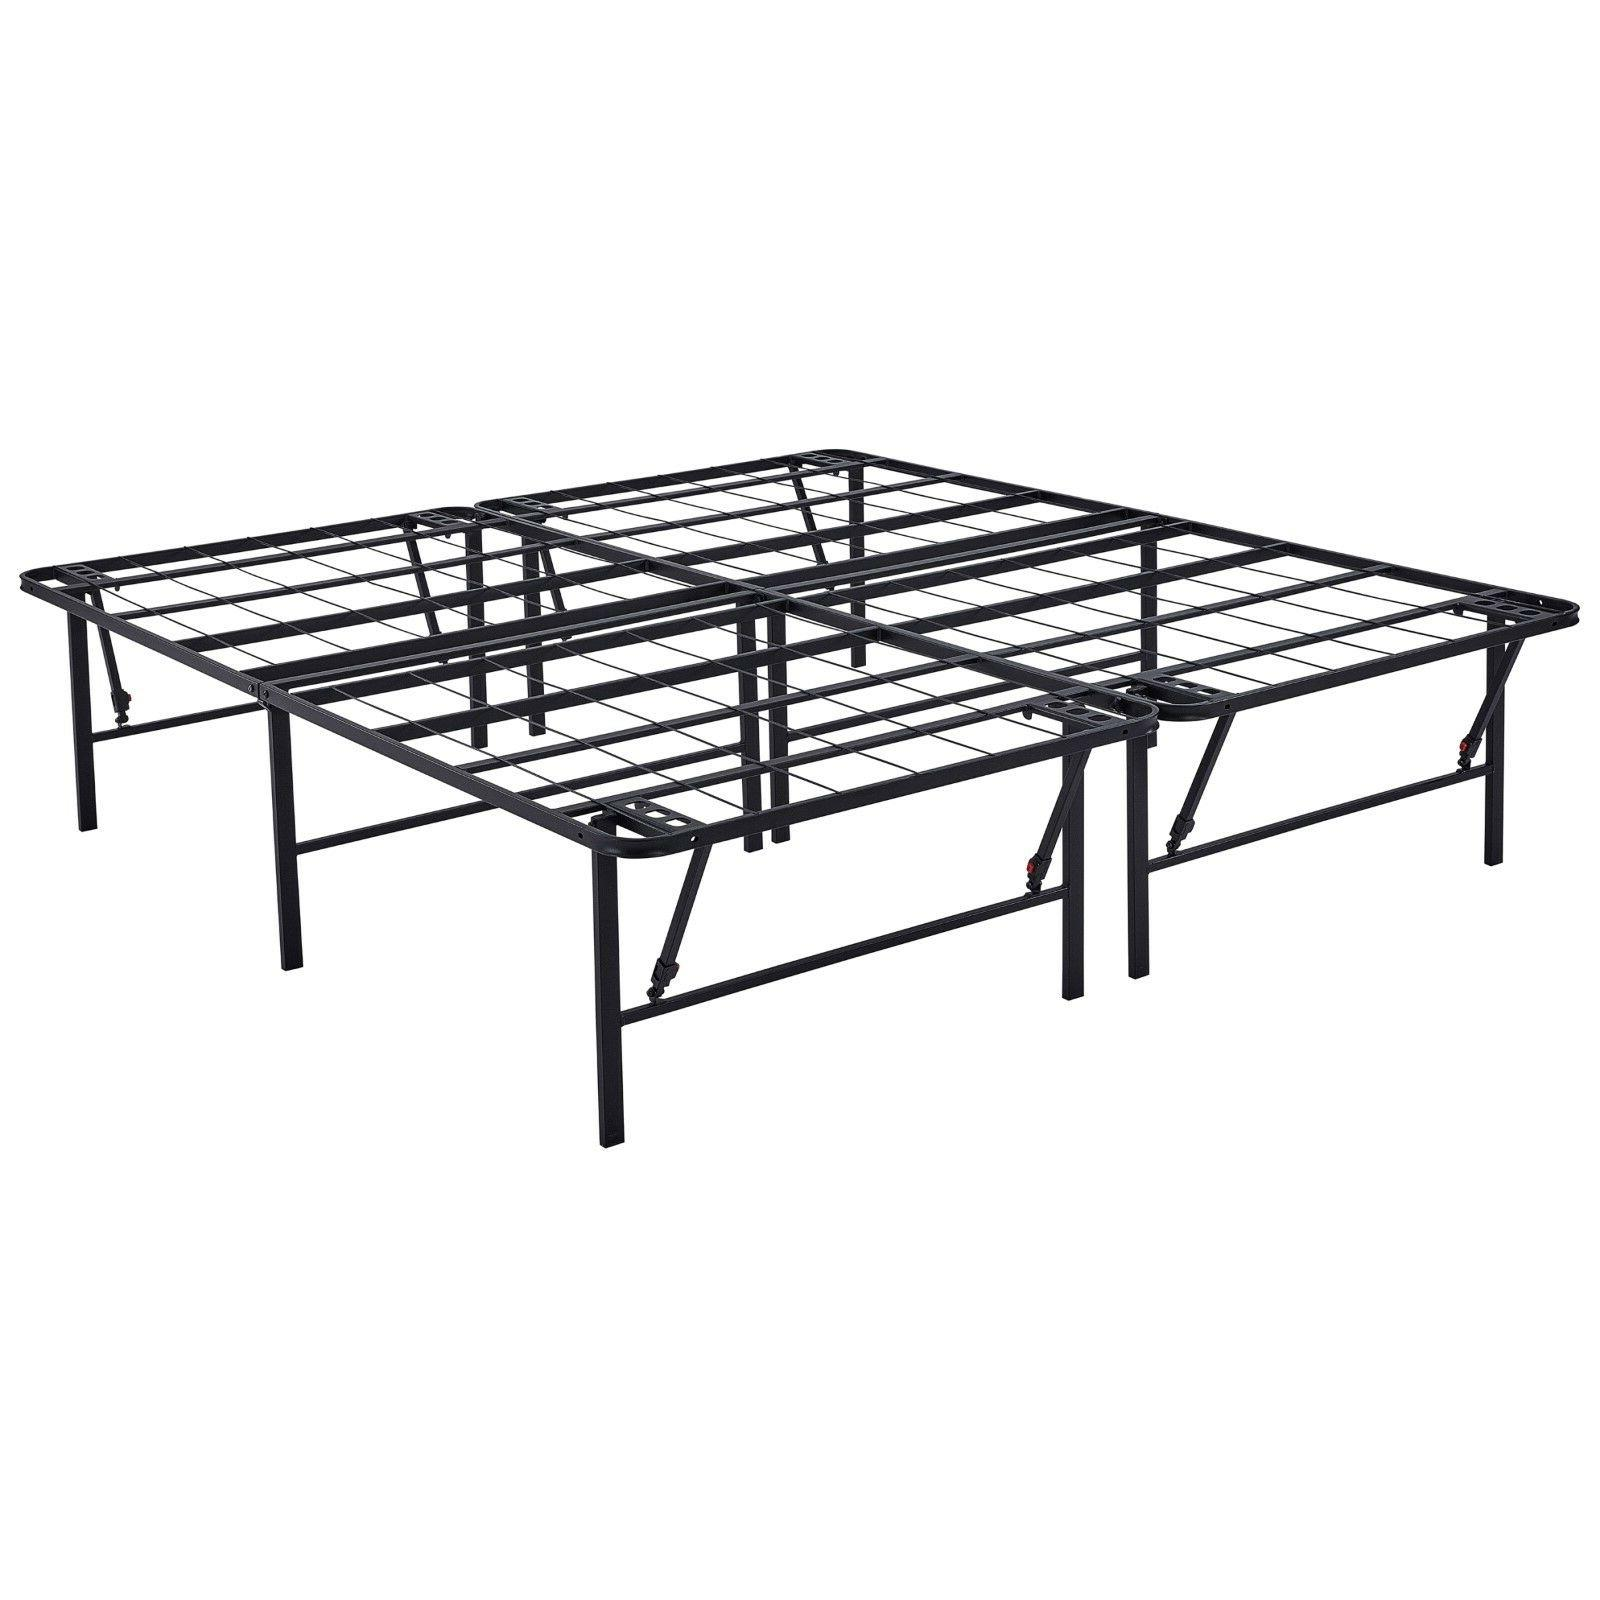 Platform King Size Bed Frame 18 Inch Foundation Metal Steel